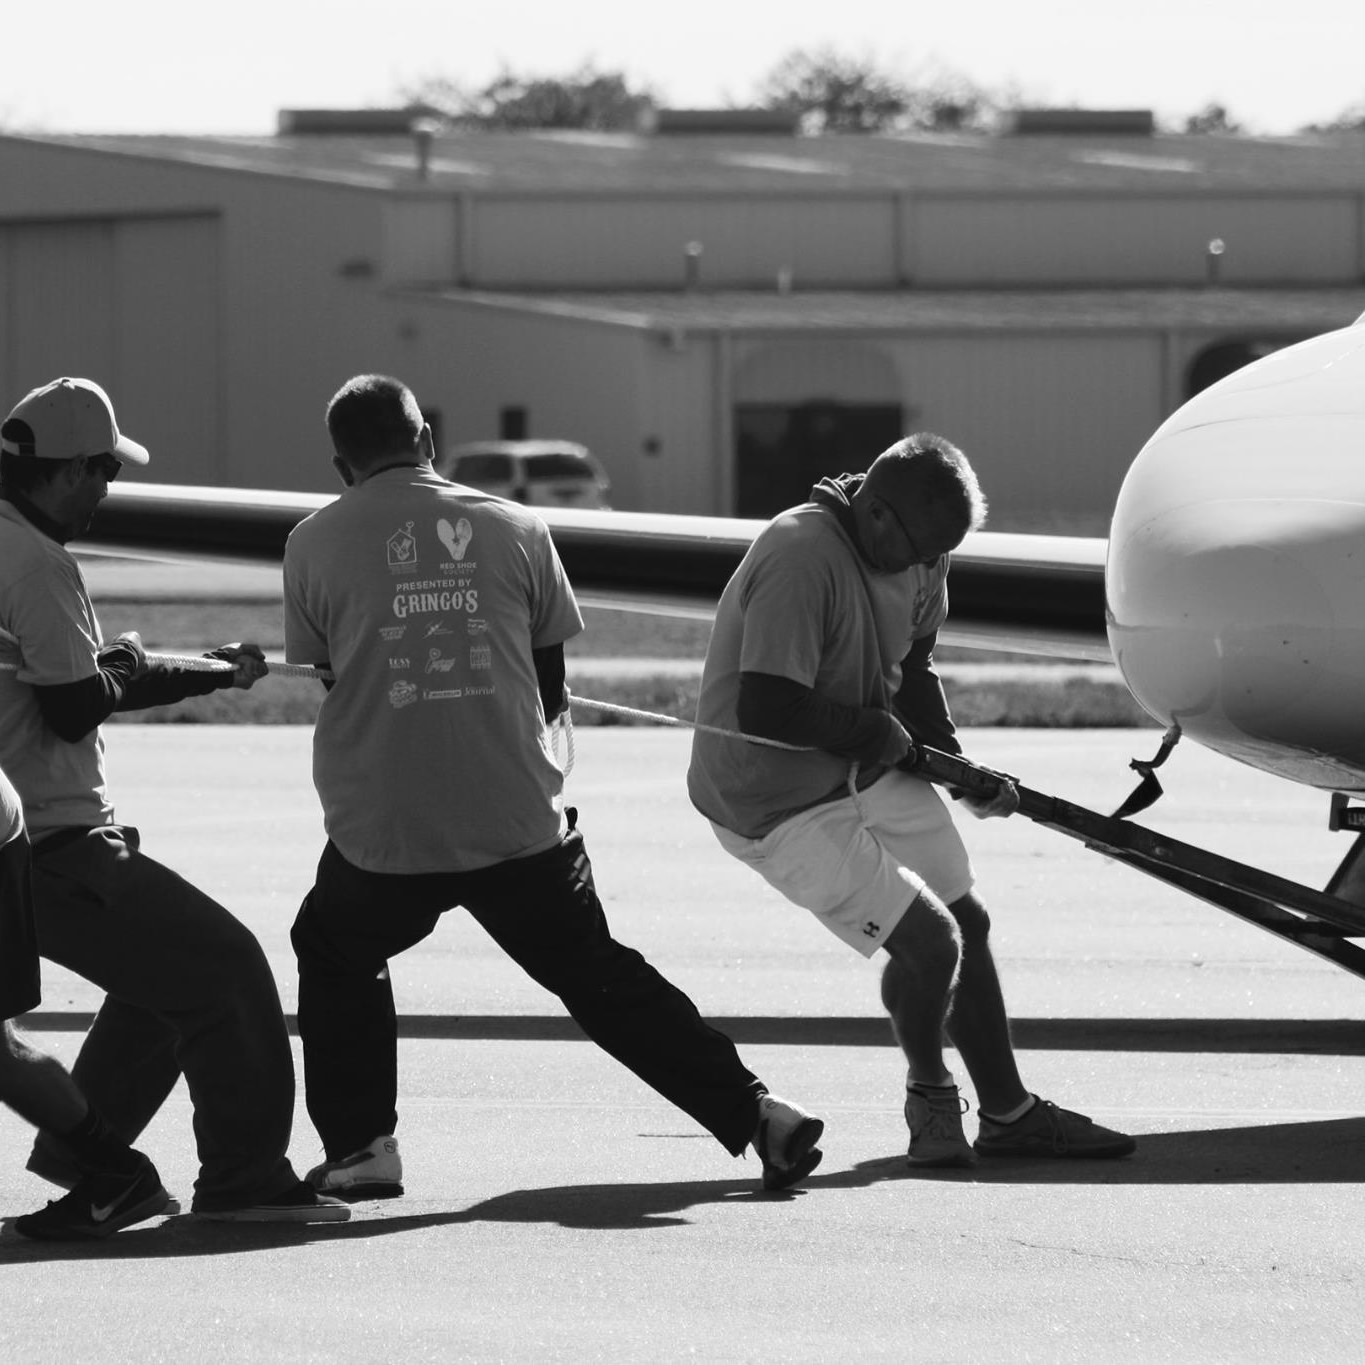 Three men pulling plane at plane pull event